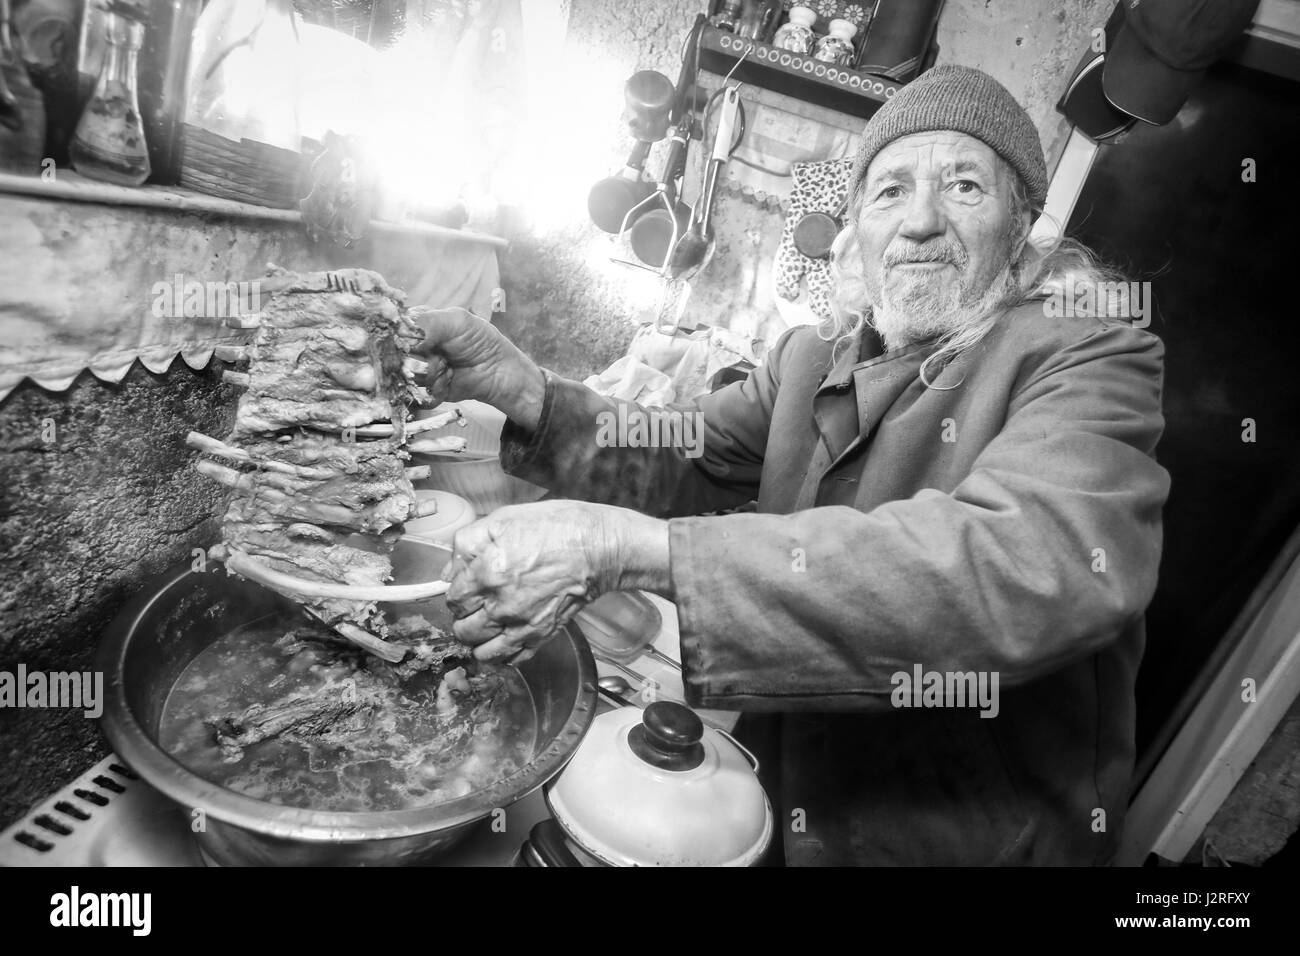 An old man boiling pork meat on the stove and holding a piece of ribs. - Stock Image